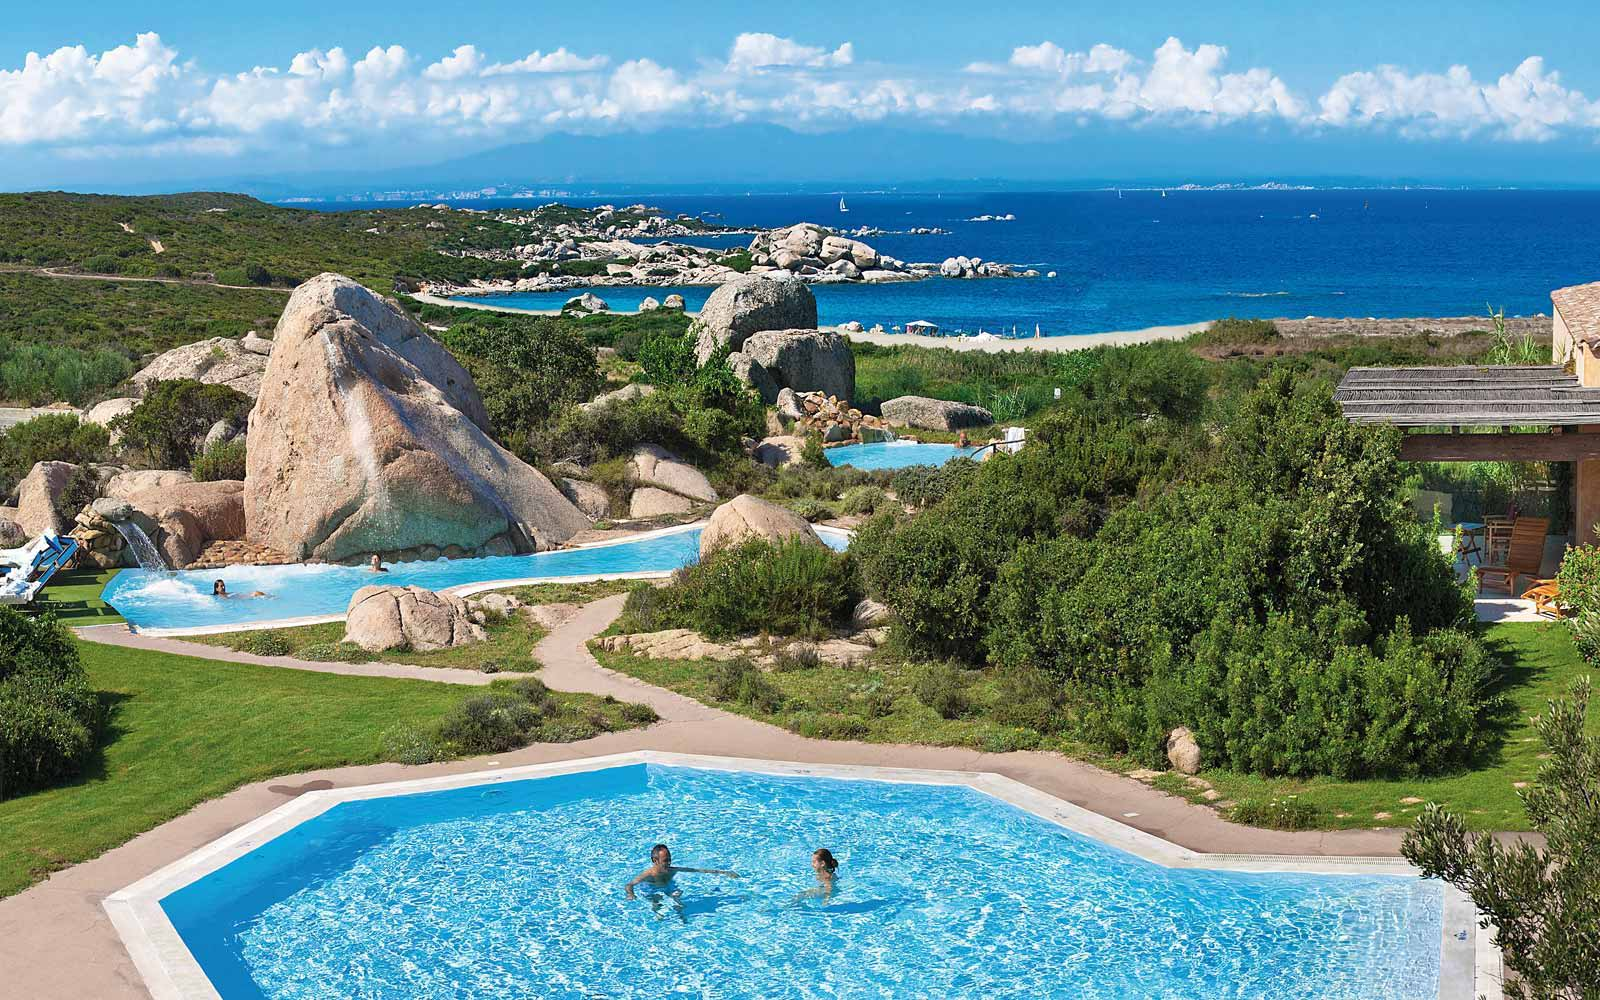 Thalasso pools at Resort Valle Dell'Erica Thalasso & Spa